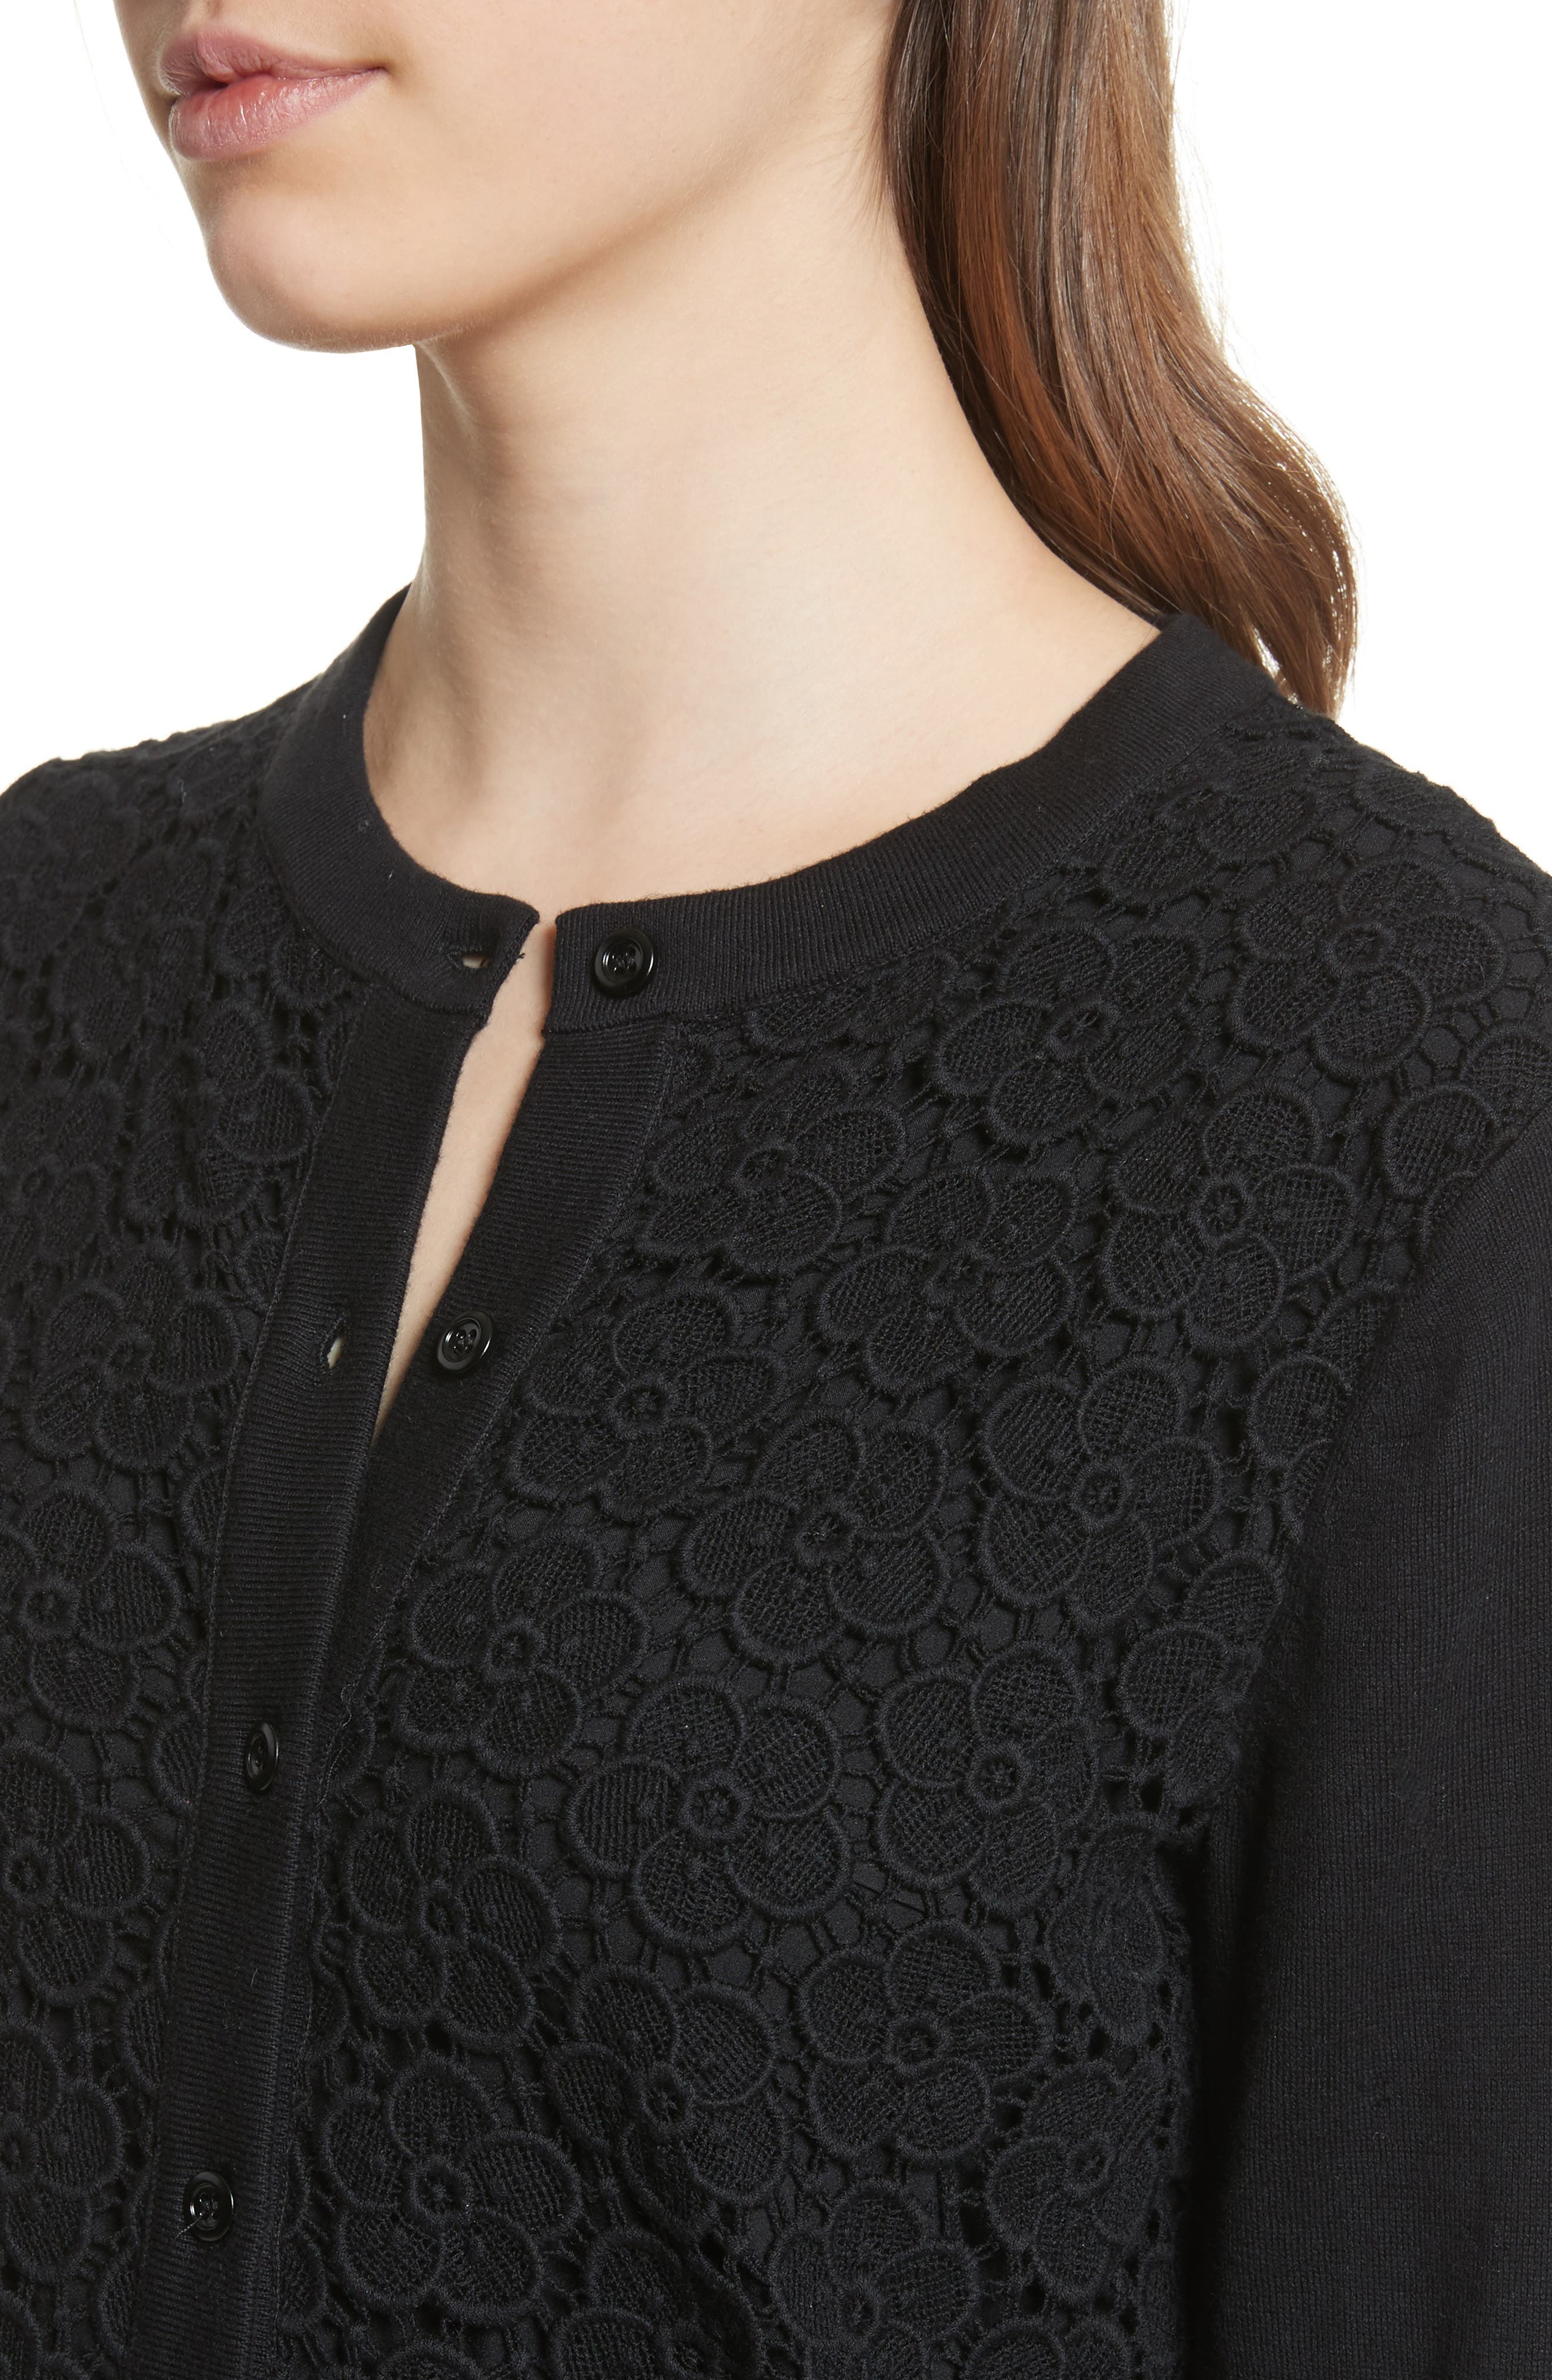 bloom floral lace cardigan,                             Alternate thumbnail 4, color,